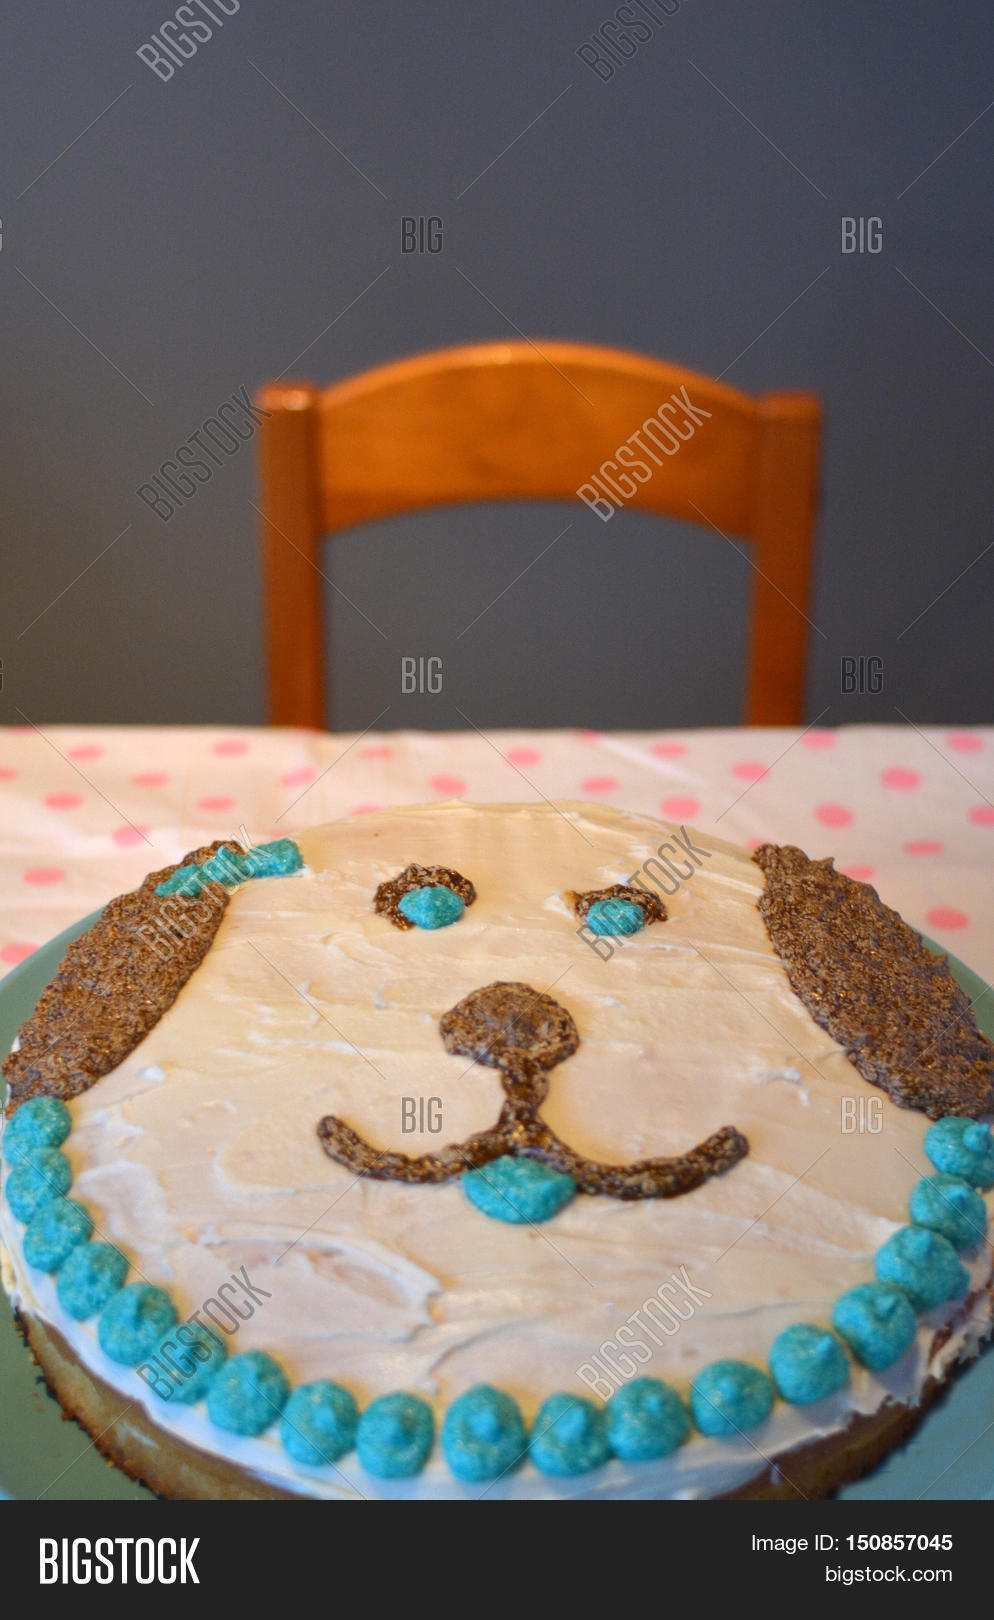 Homemade Birthday Cake Image Photo Free Trial Bigstock